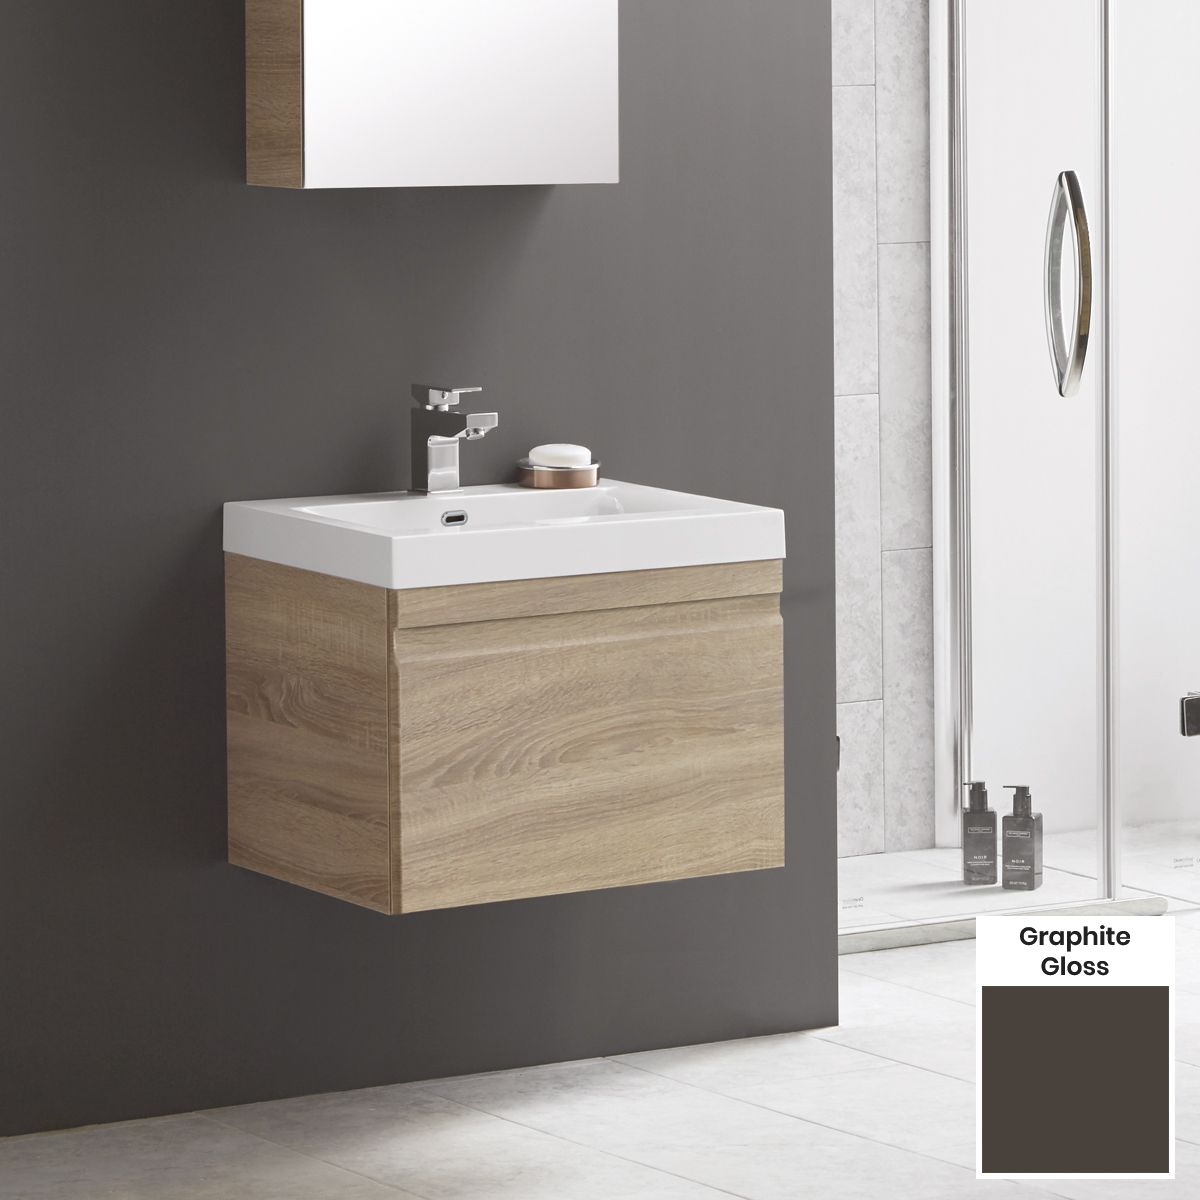 Elation Eko Graphite Gloss Vanity Unit with Slab Door 550mm